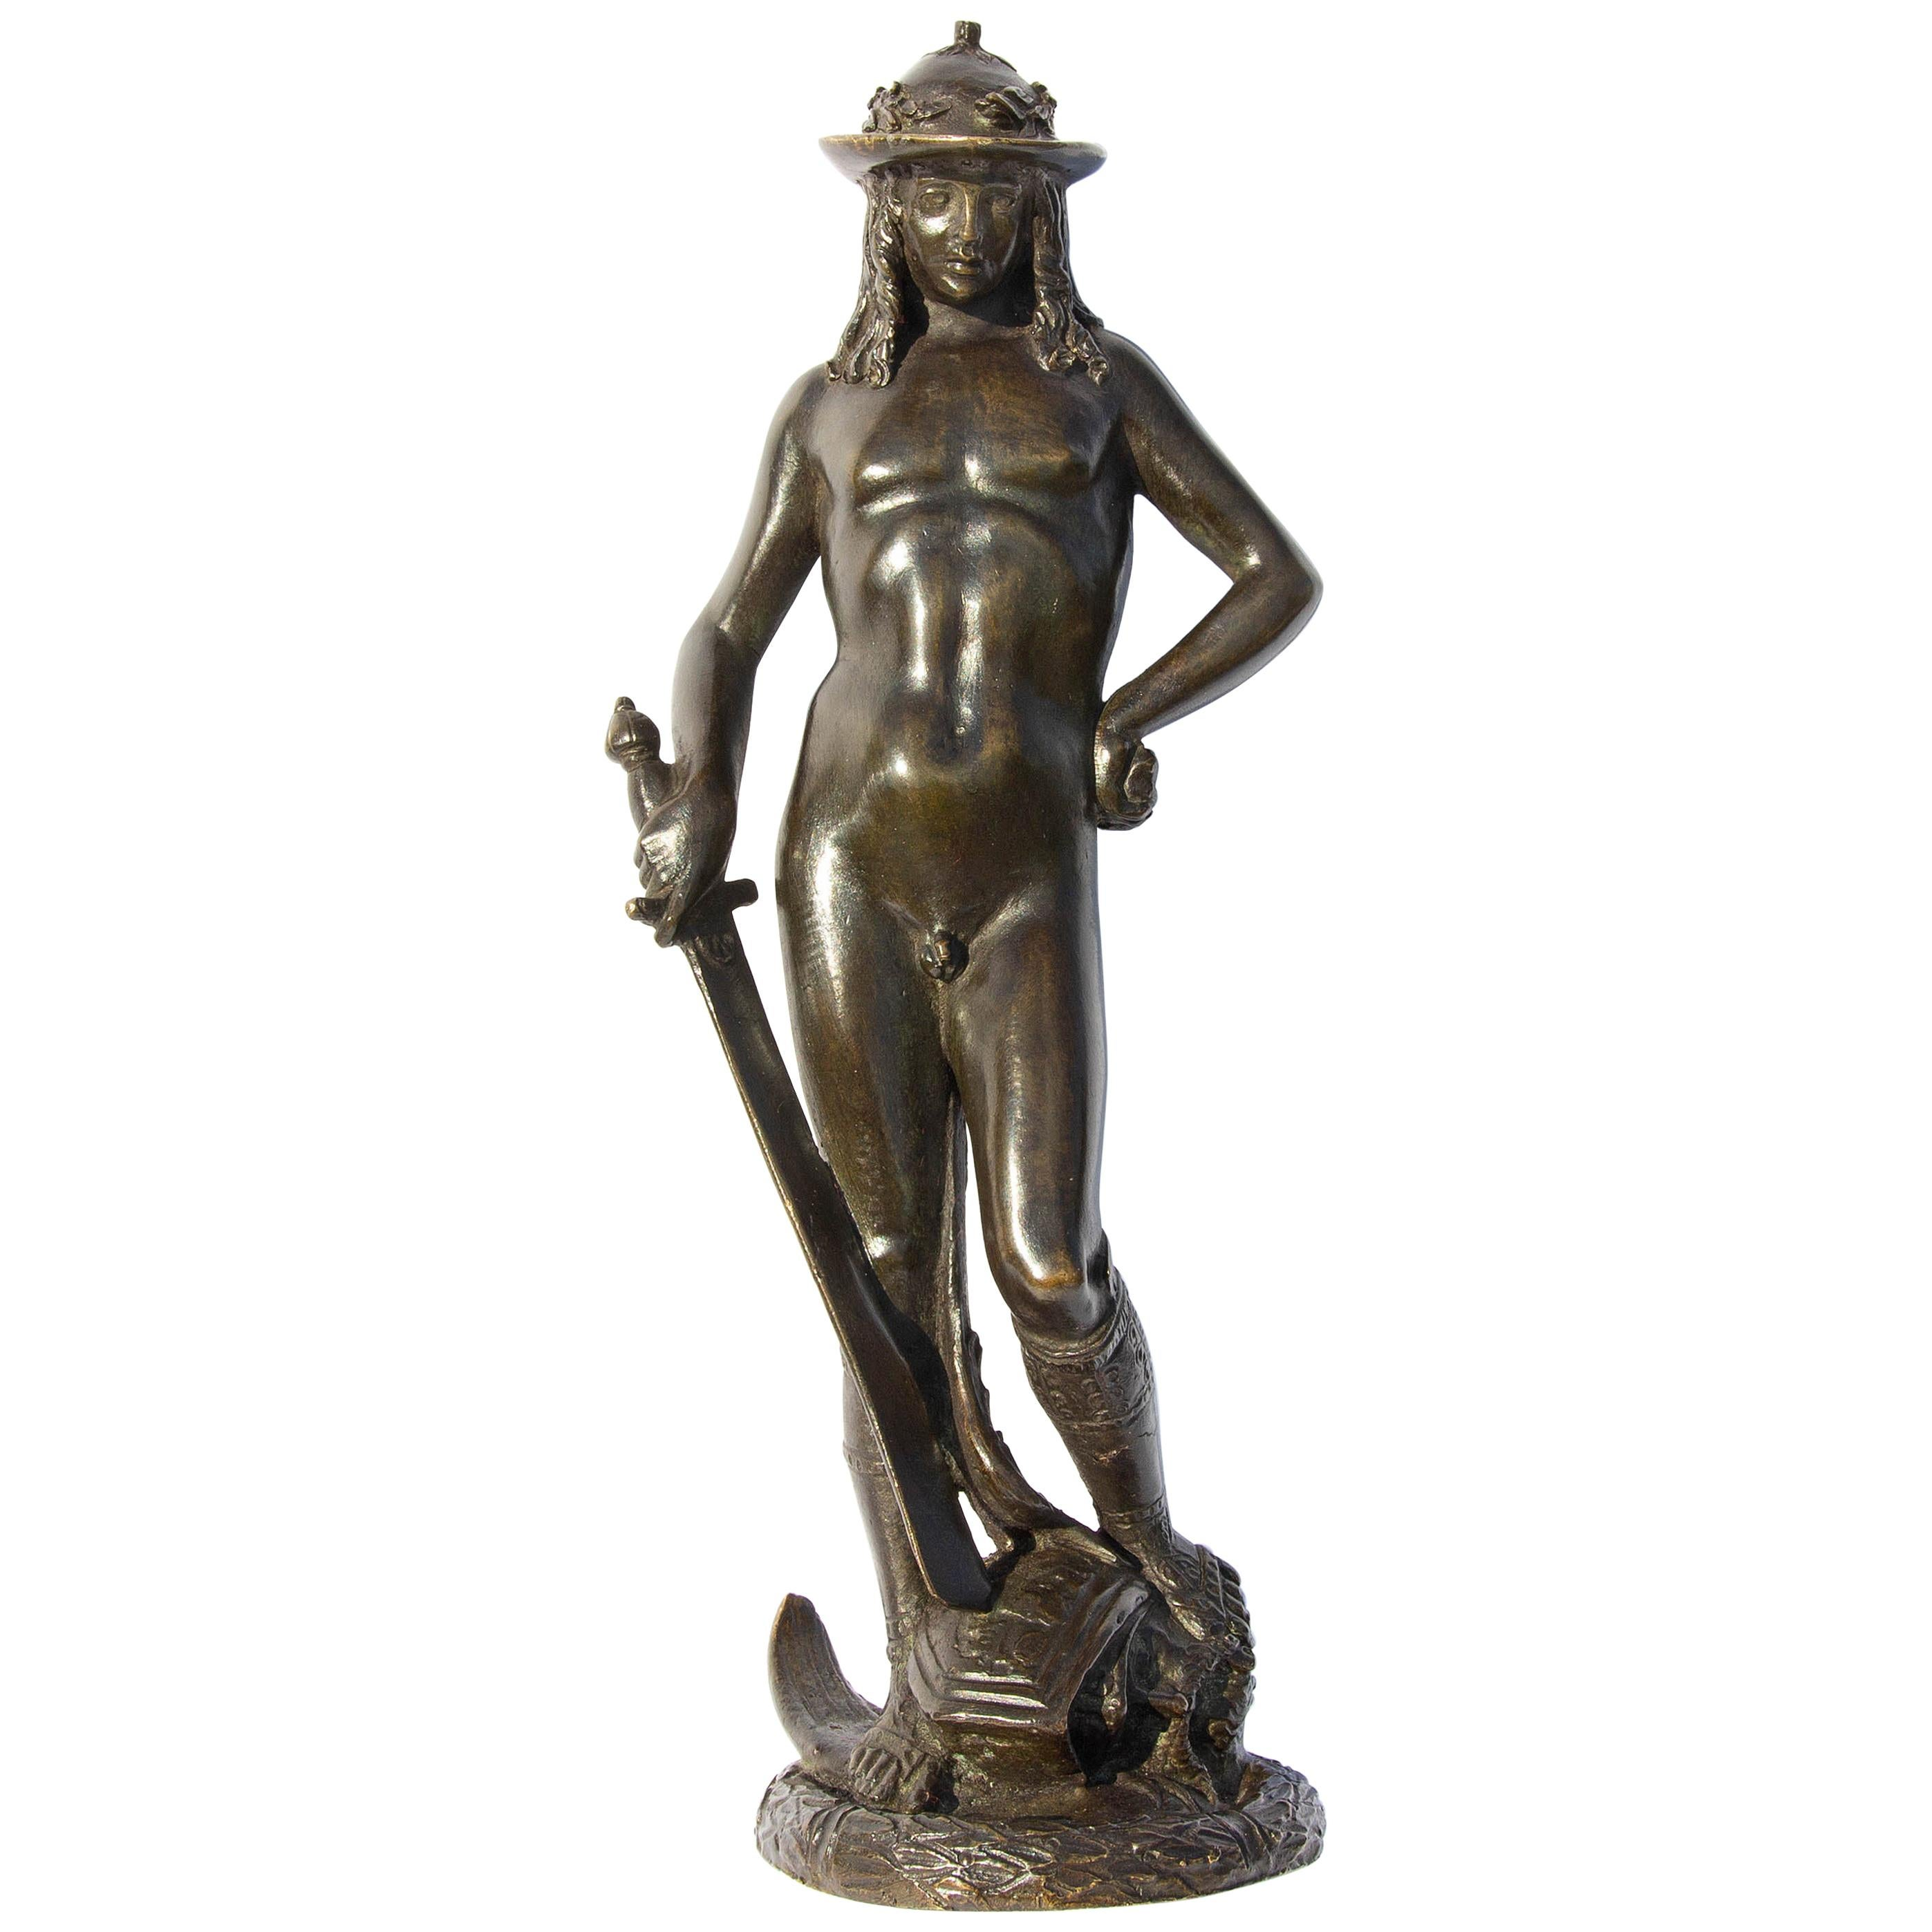 Vintage Figurine Gift Idea Bronze Sculpture on Marble Base David/'s Victory over the Goliath